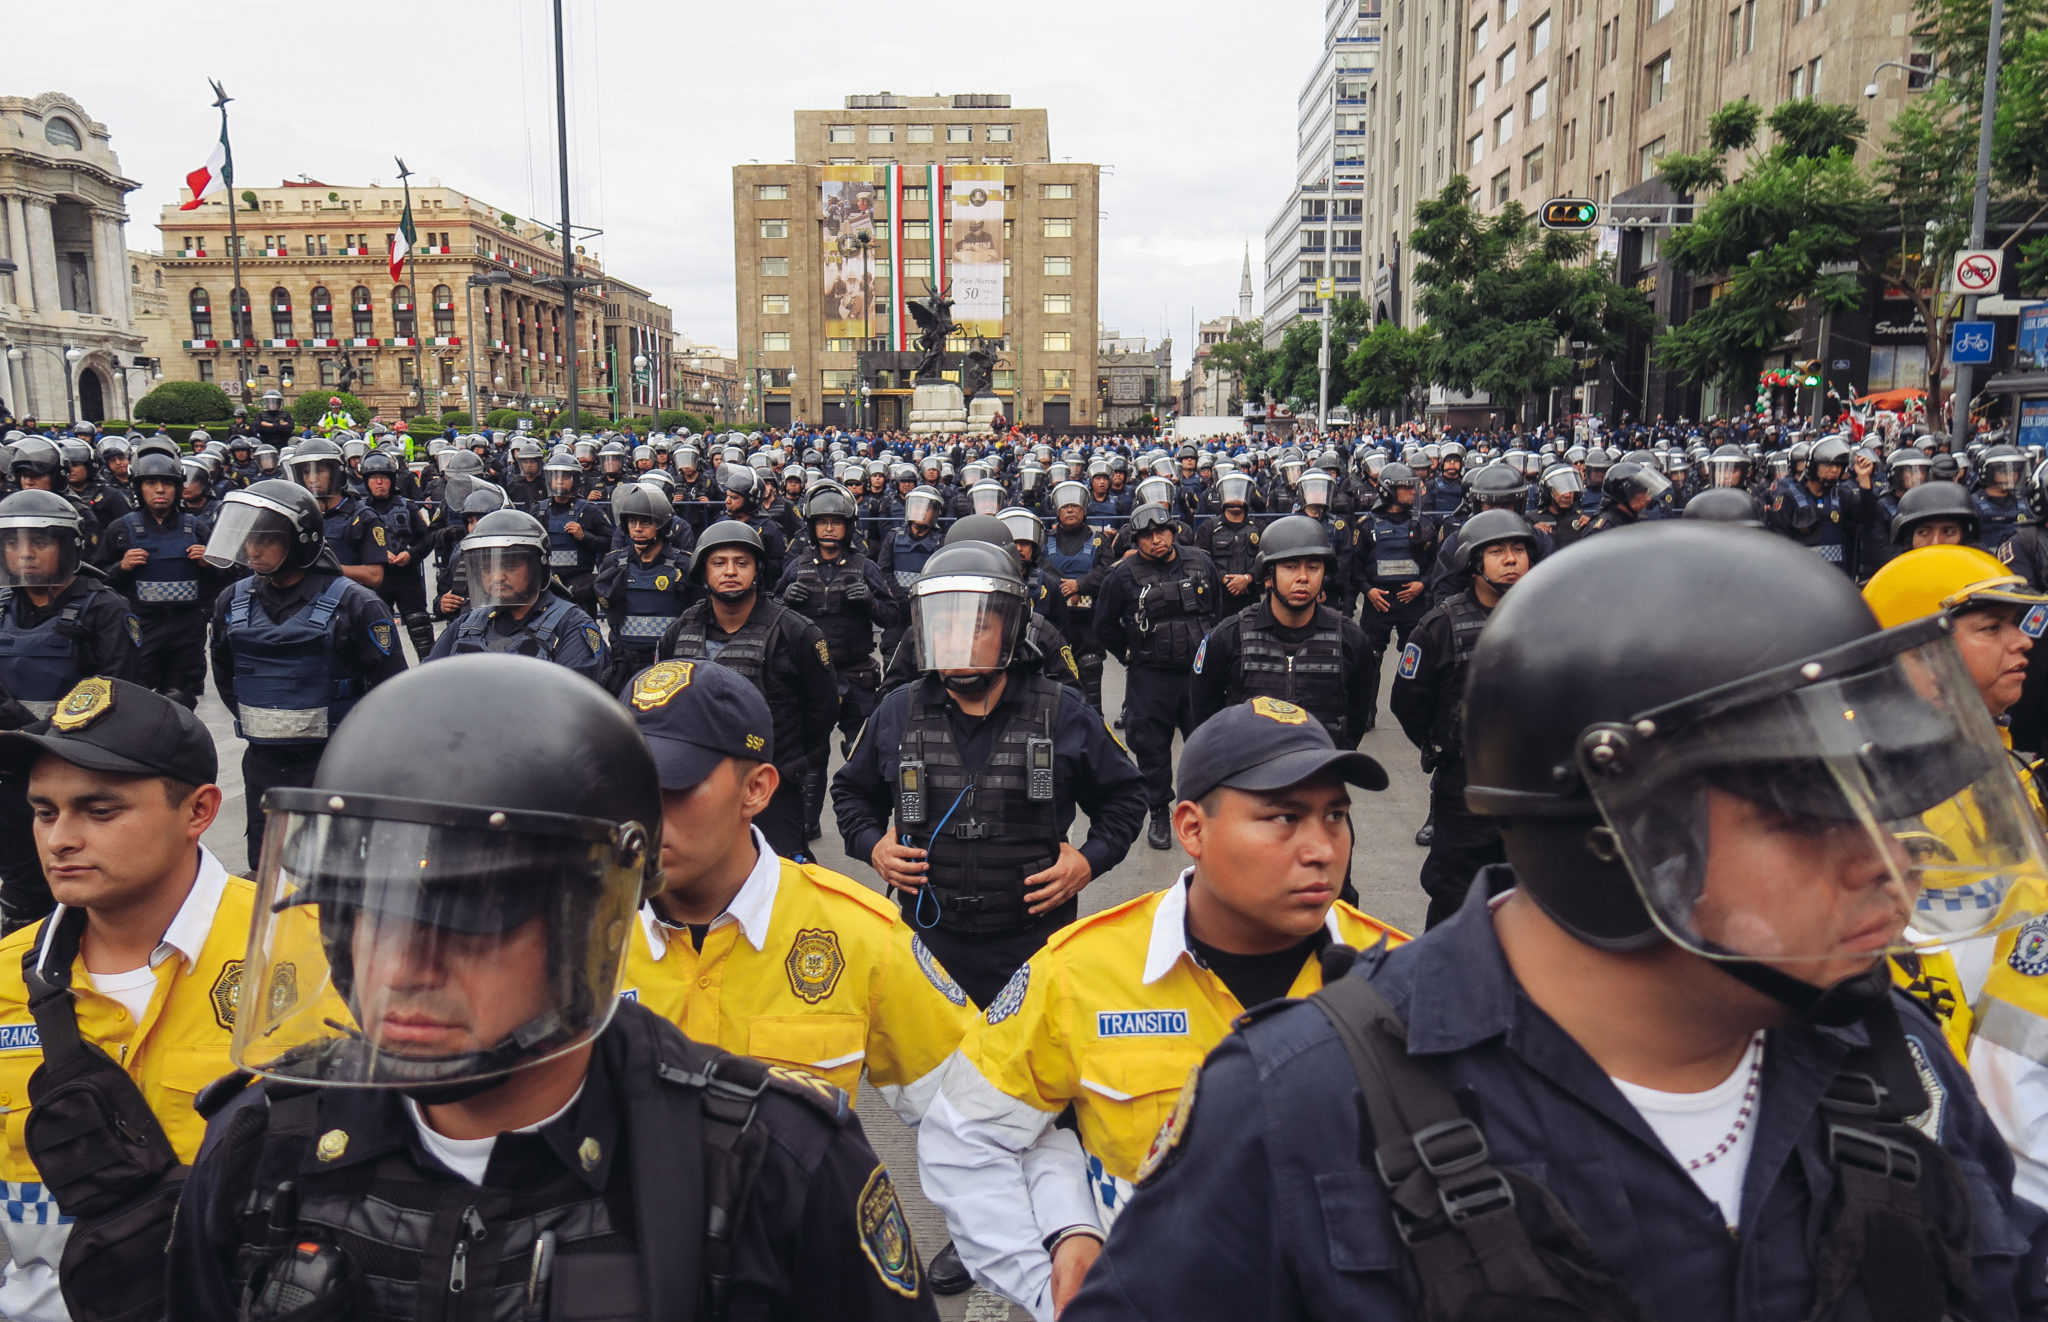 False suspicions: Arbitrary detentions by police in Mexico